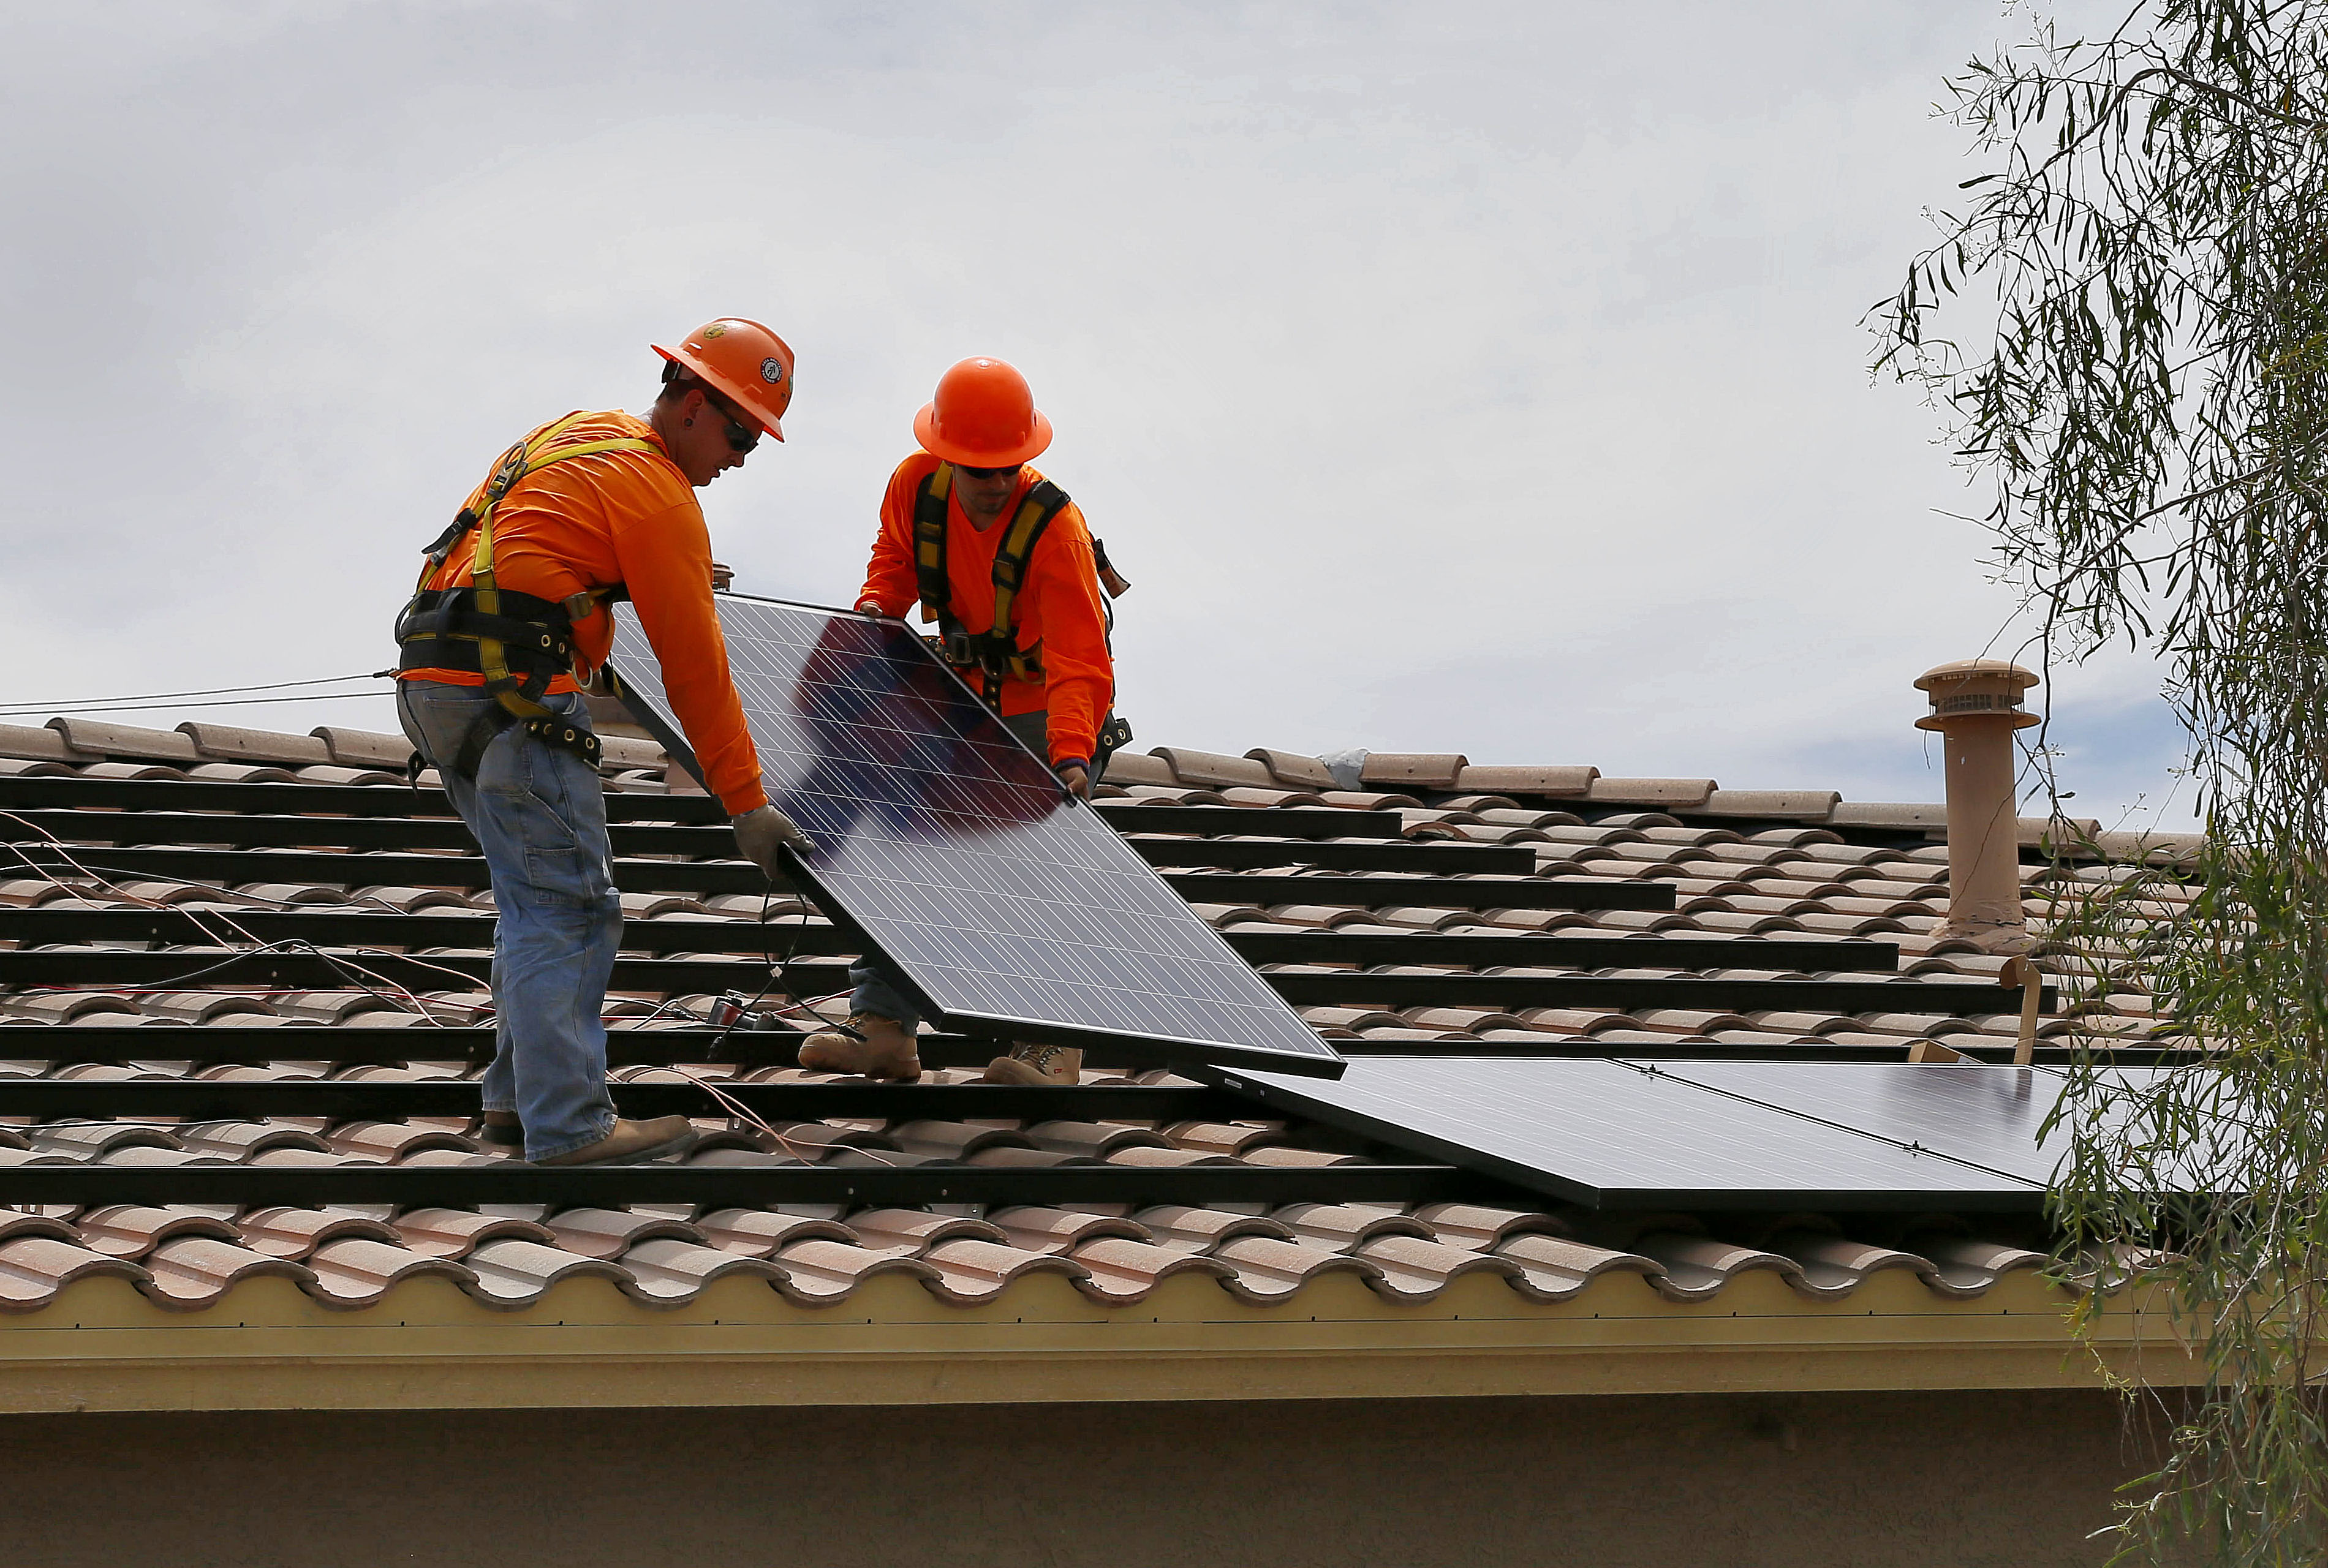 Photo: Rooftop solar (AP Photo)